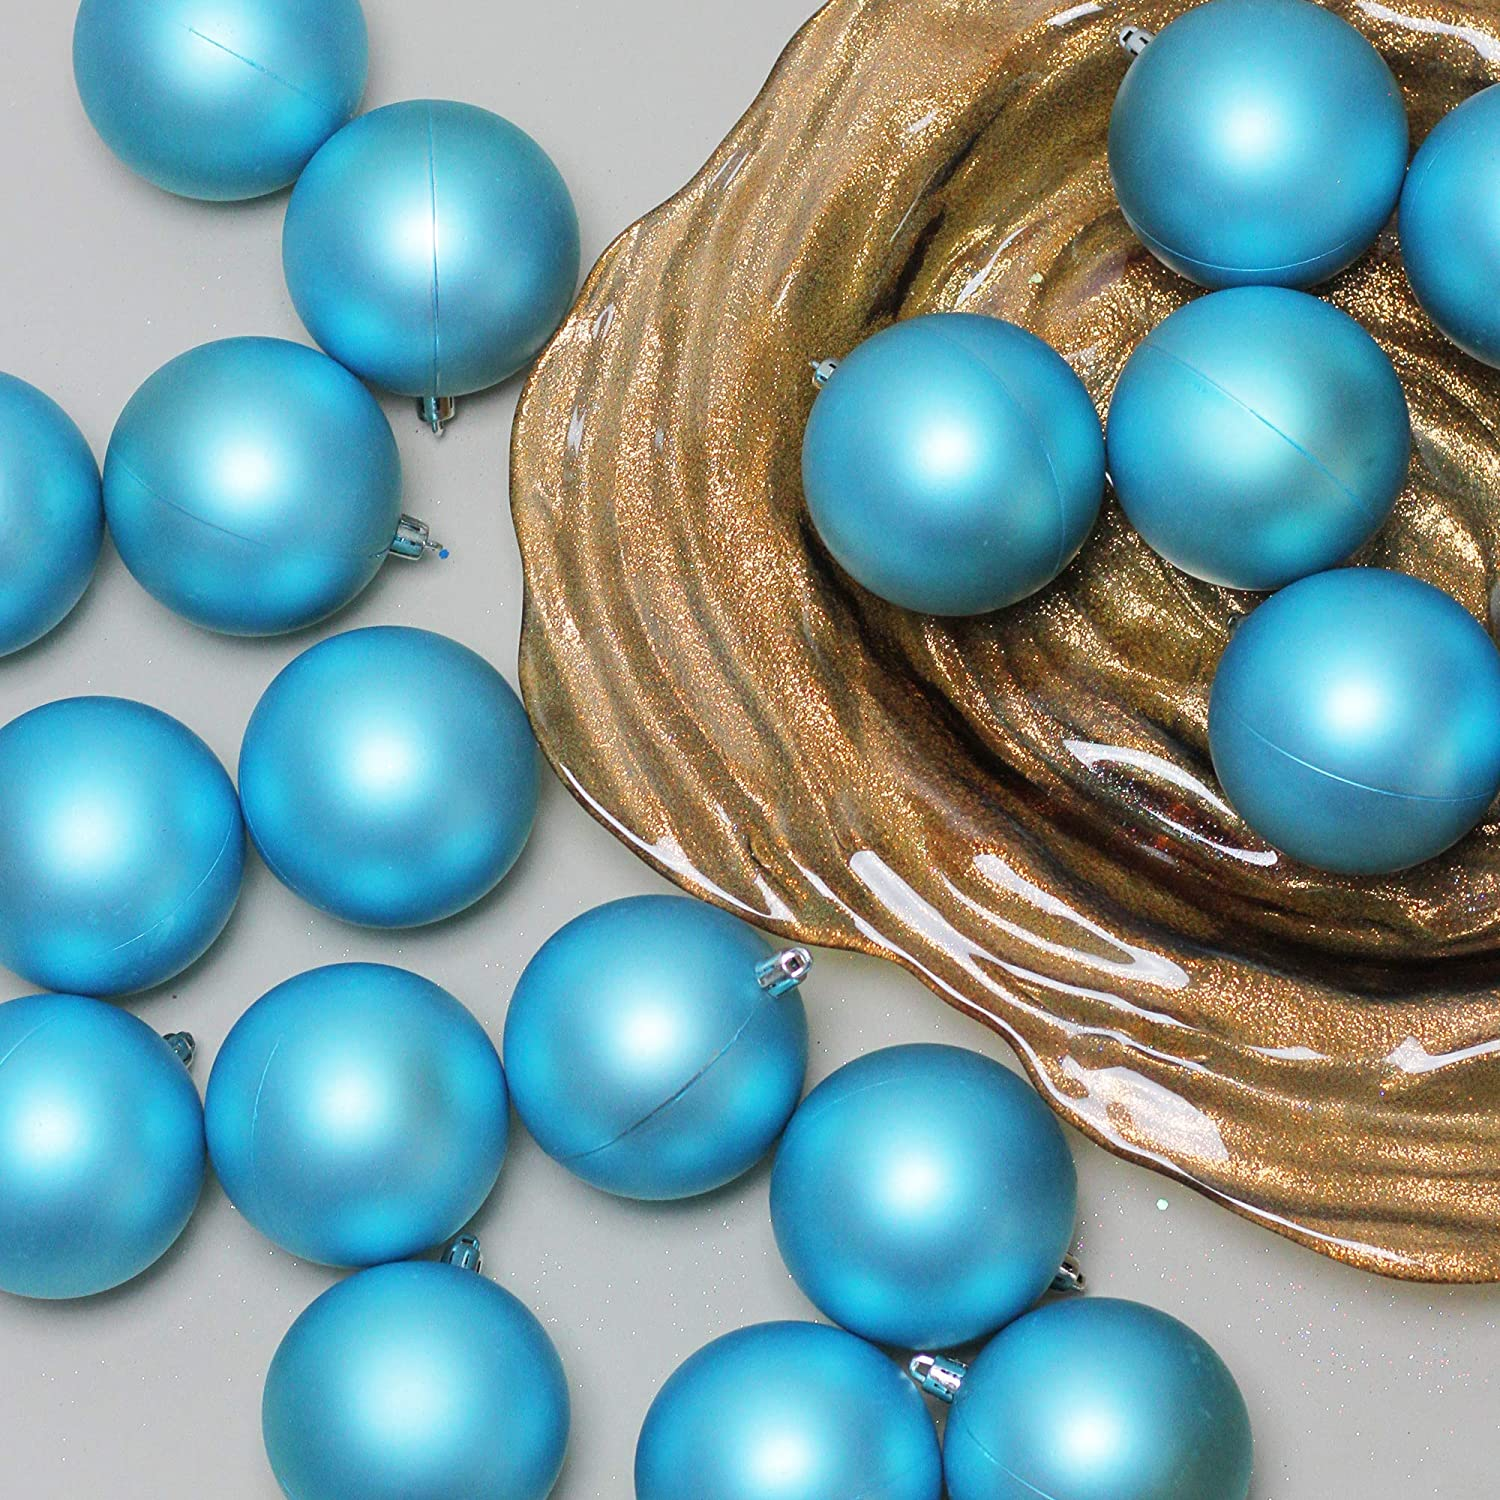 Northlight 32 Count Shatterproof Matte Turquoise Blue Christmas Ball Ornaments 3.25